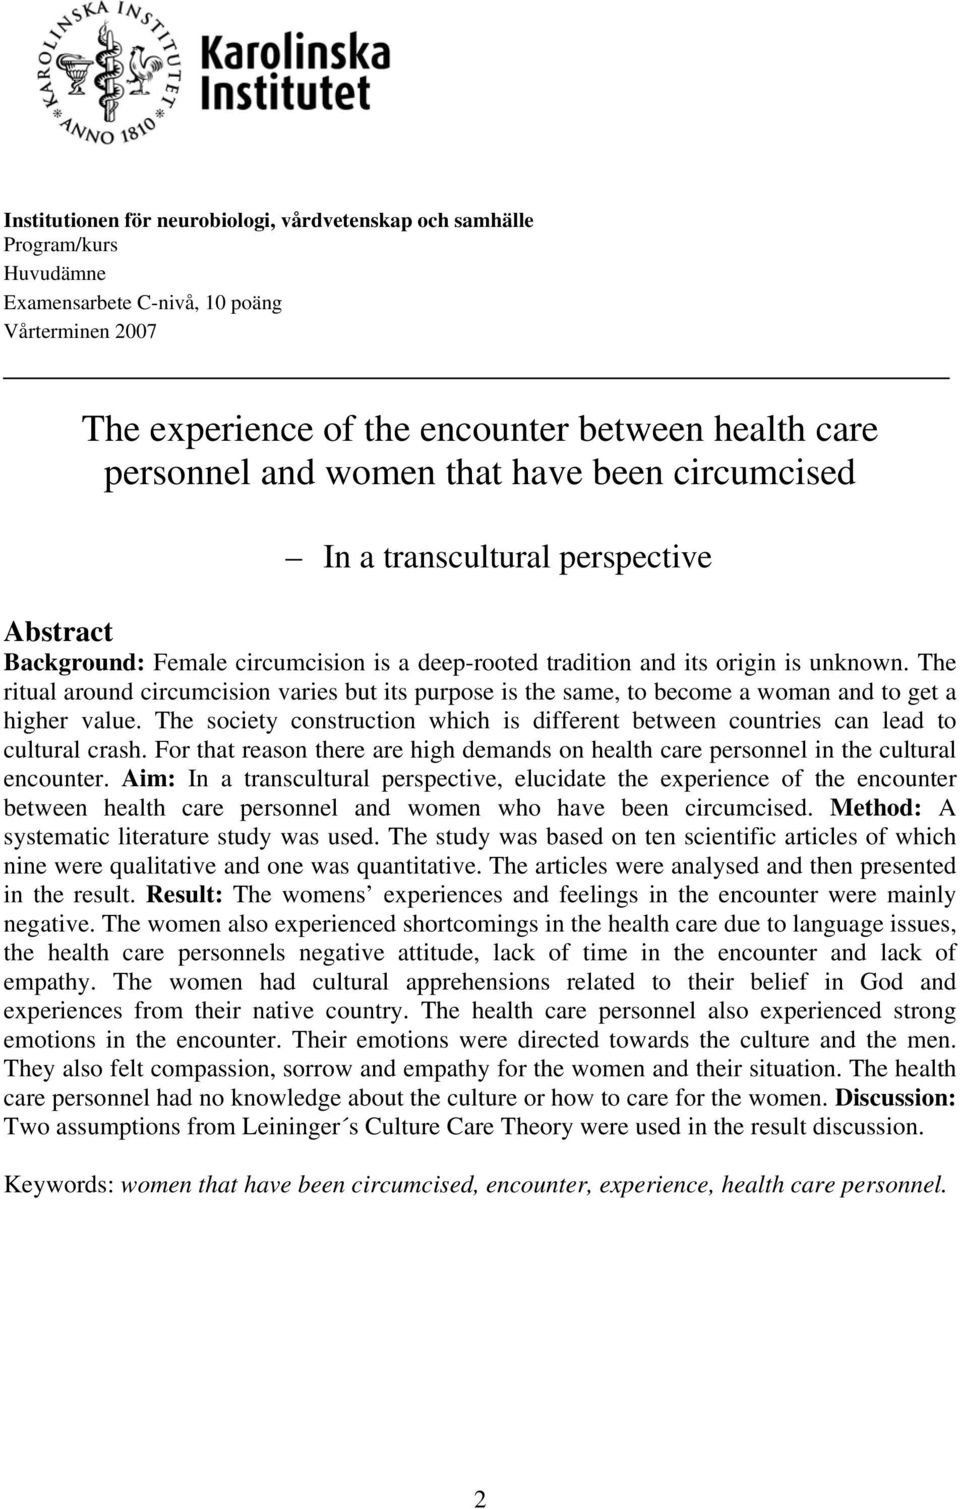 The ritual around circumcision varies but its purpose is the same, to become a woman and to get a higher value.